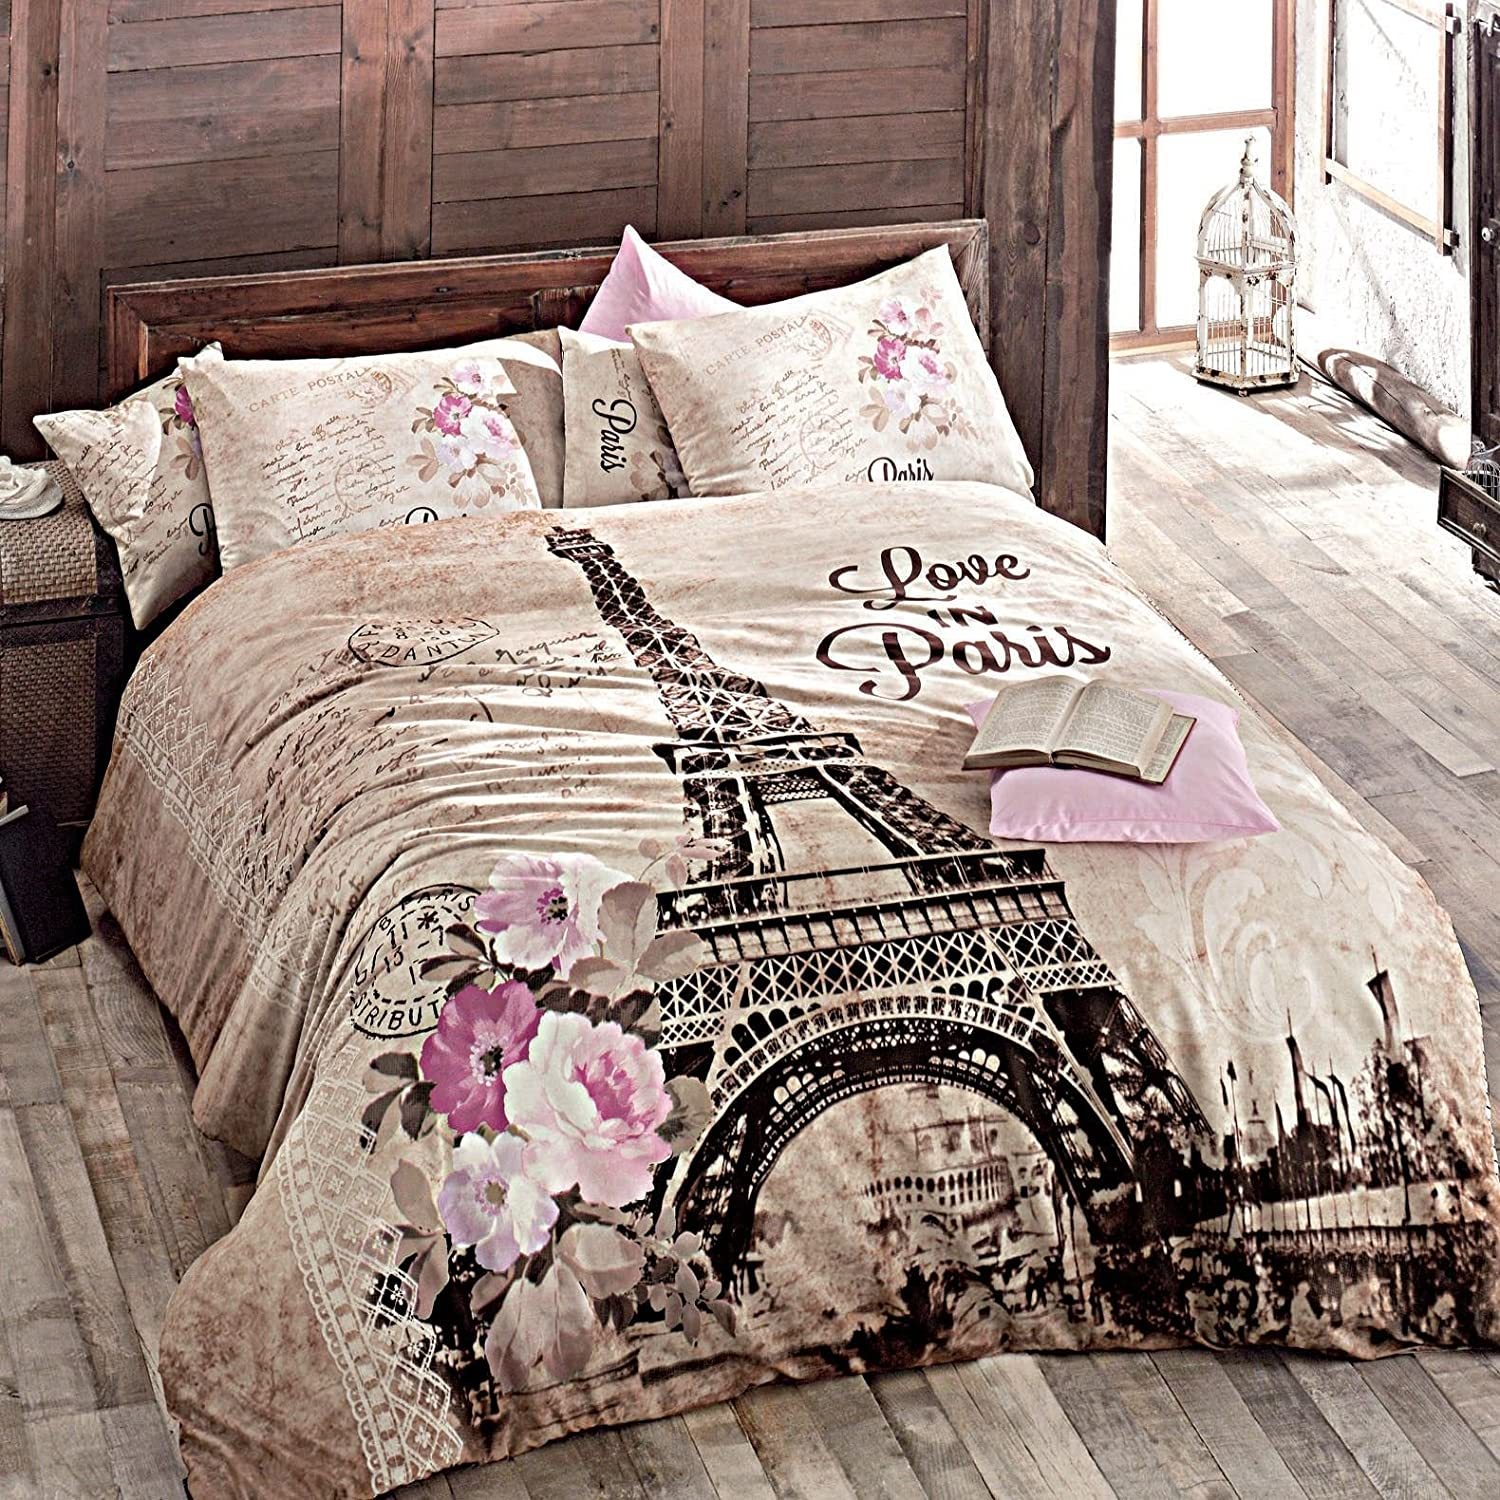 Paris Home 100% Cotton 5pcs Full Size Comforter Set